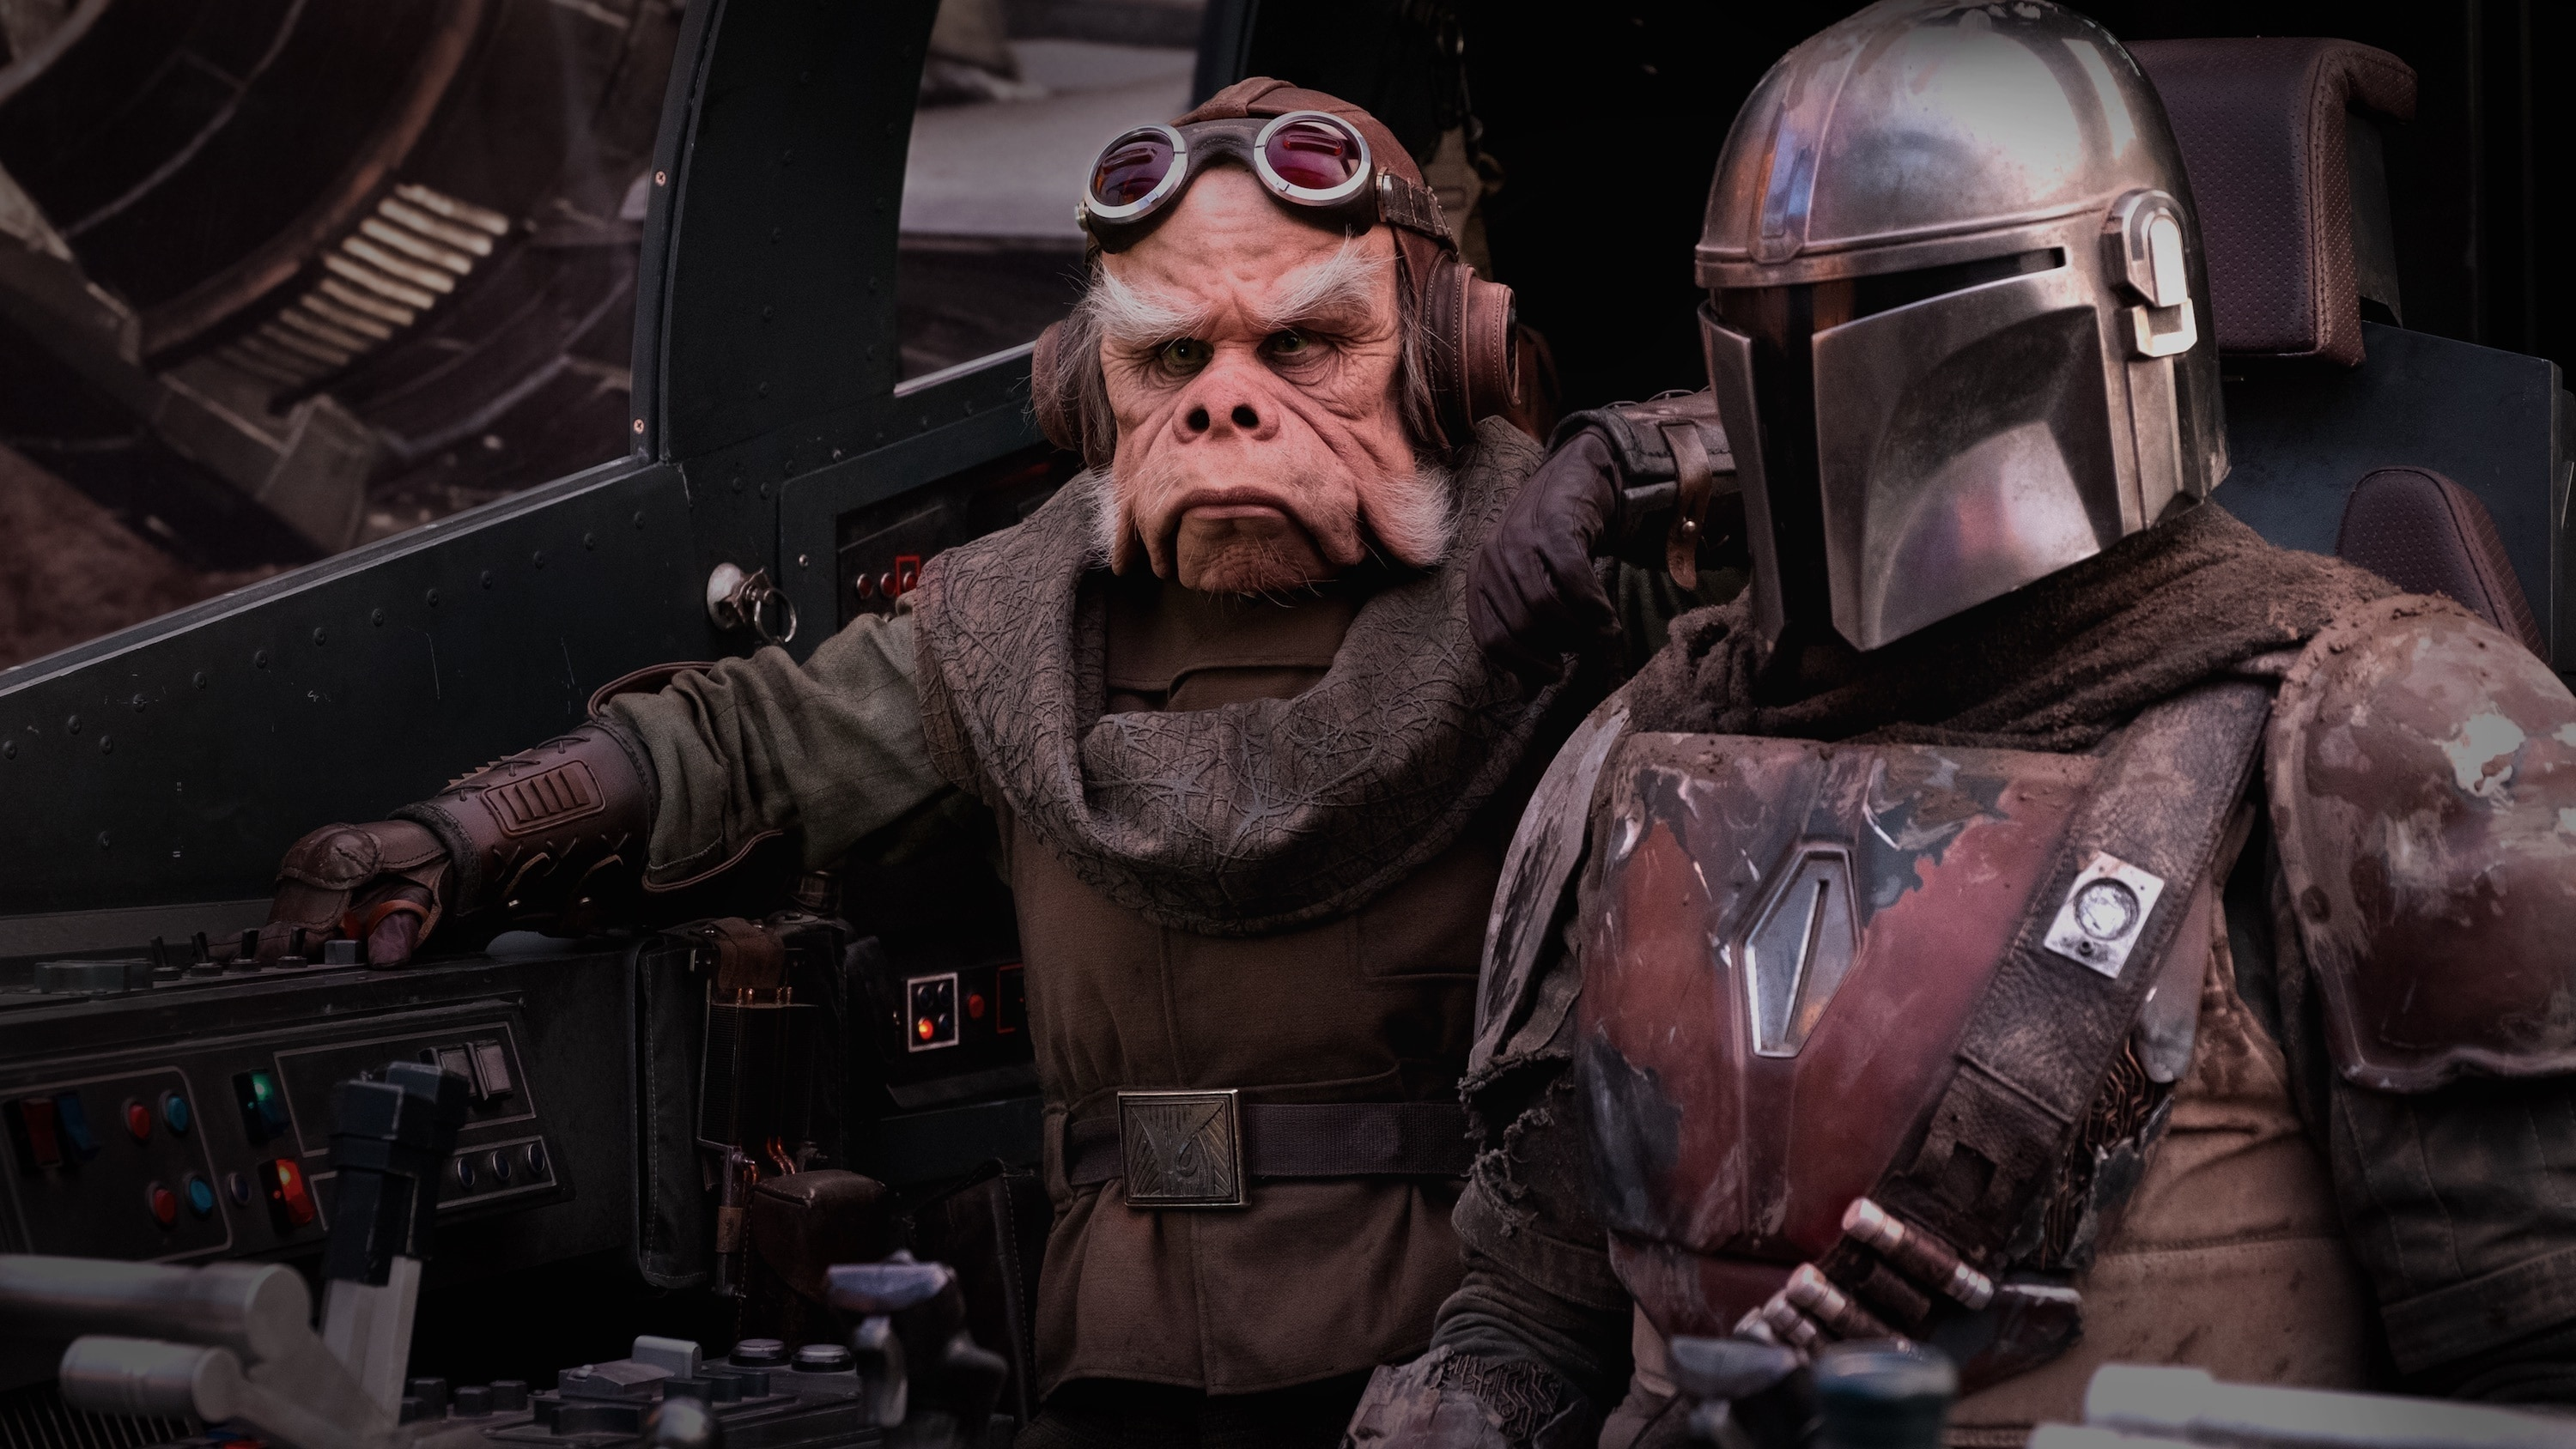 Chapter 2 Pedro Pascal is the Mandalorian and Nick Nolte is the voice of Kuiil in THE MANDALORIAN, exclusively on Disney+. © 2019 Lucasfilm Ltd & ™. All Rights Reserved.